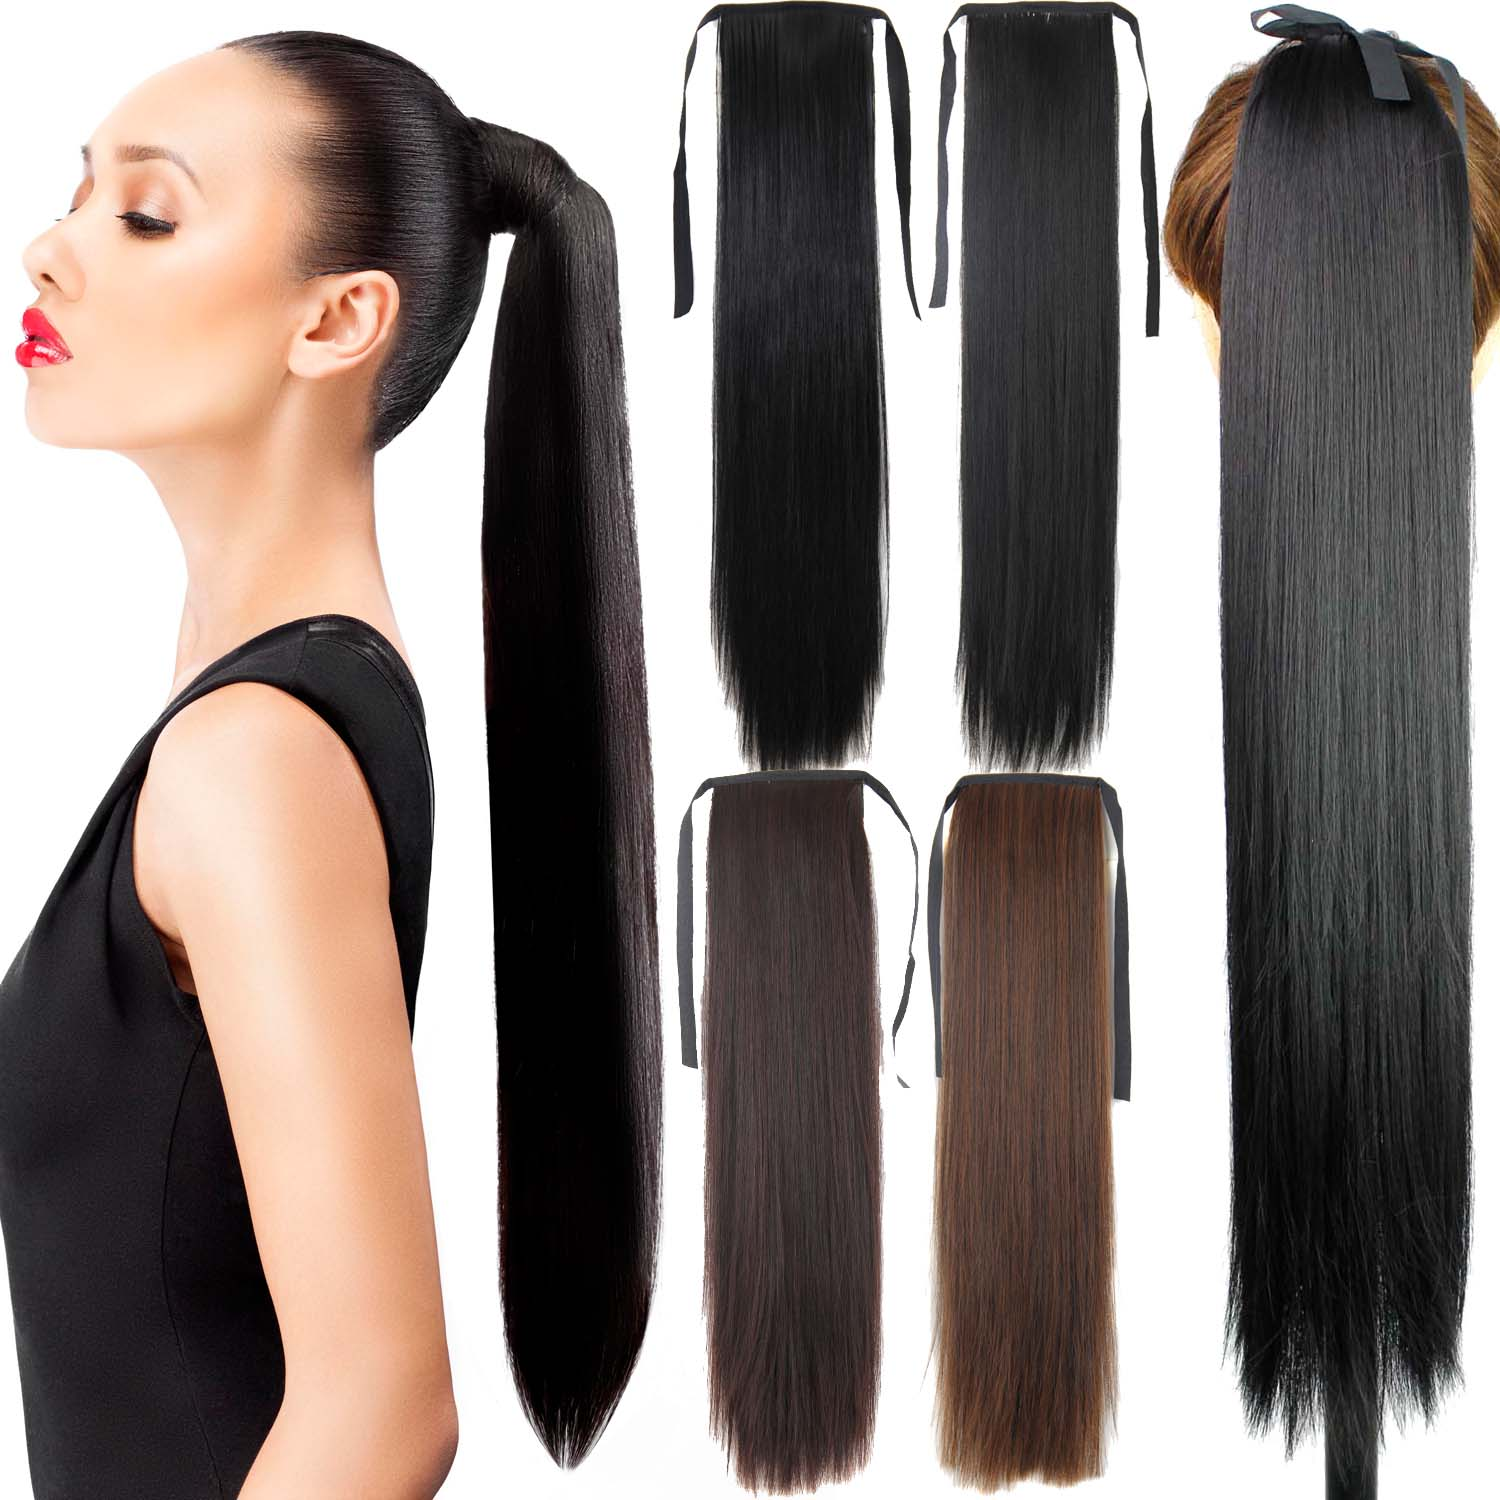 Fake Hair Ponytail 105g 22″ Long Straight